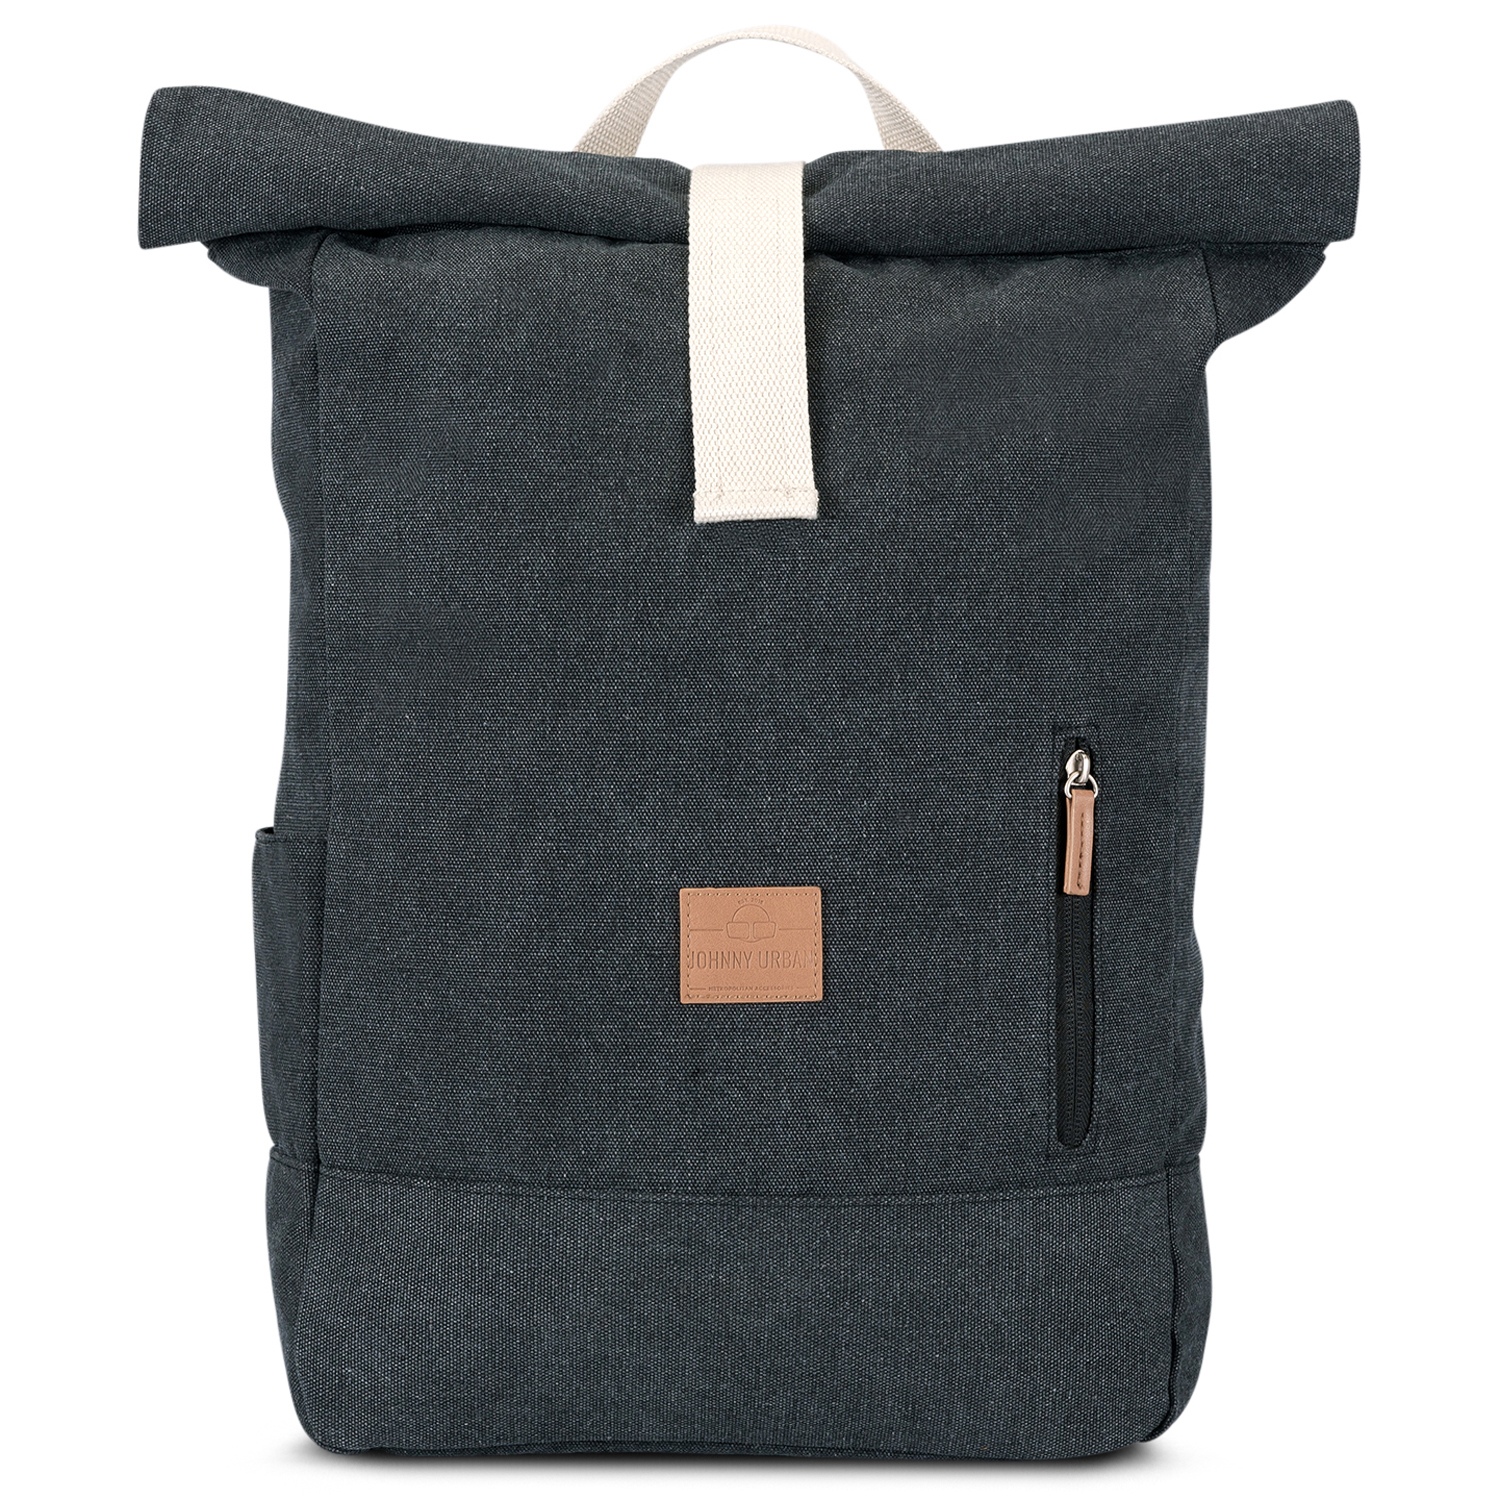 Rolltop Rucksack - Adam - anthrazit - Johnny Urban